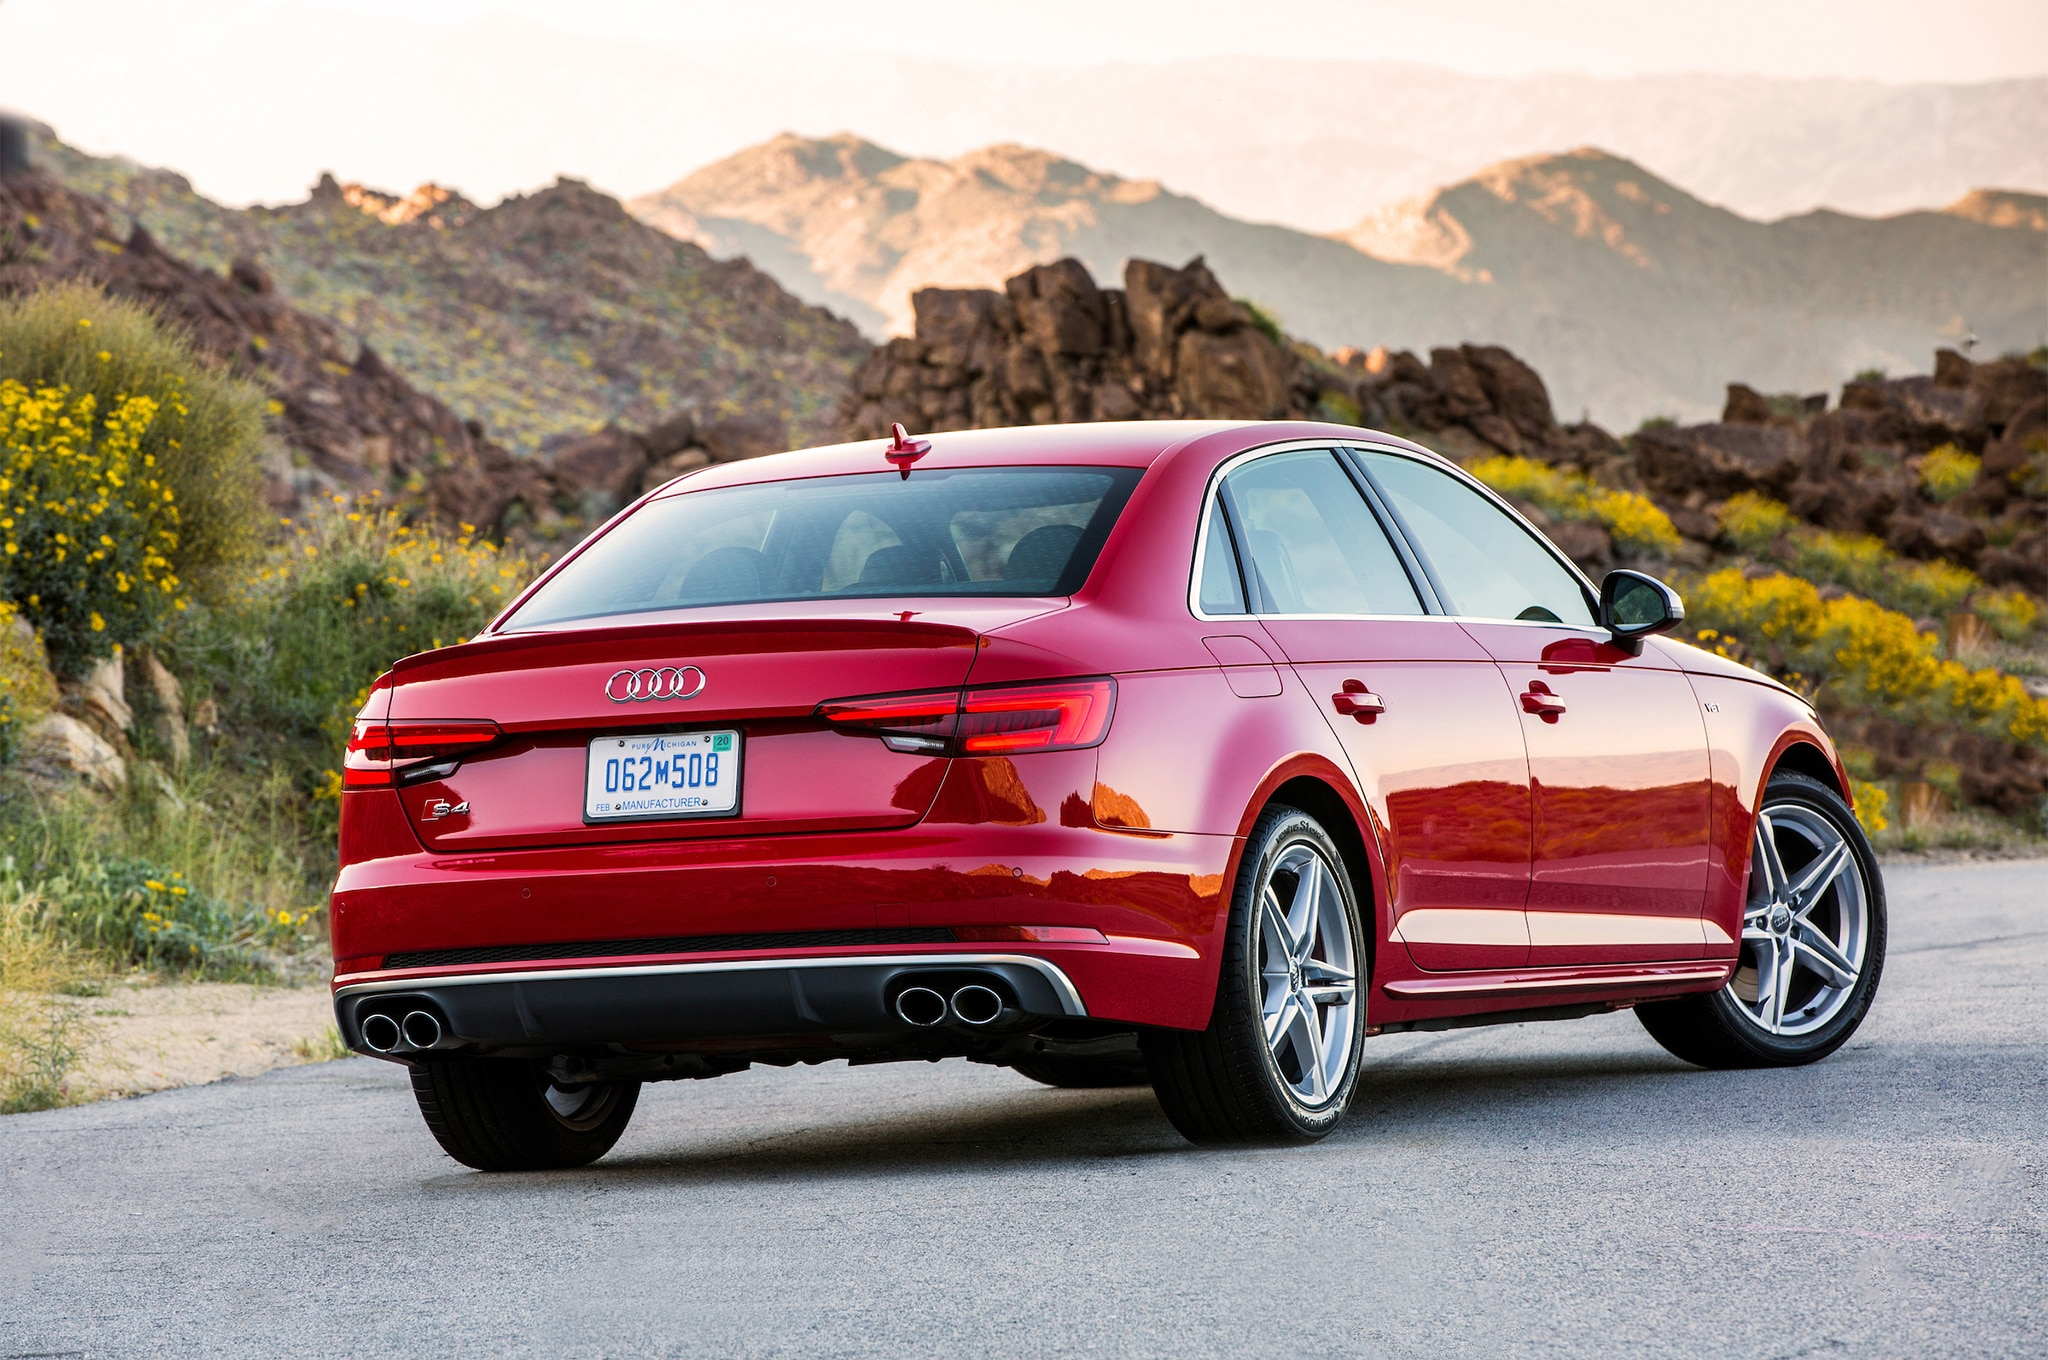 Audi S4 0 60 >> First Drive: 2018 Audi S4 | Automobile Magazine